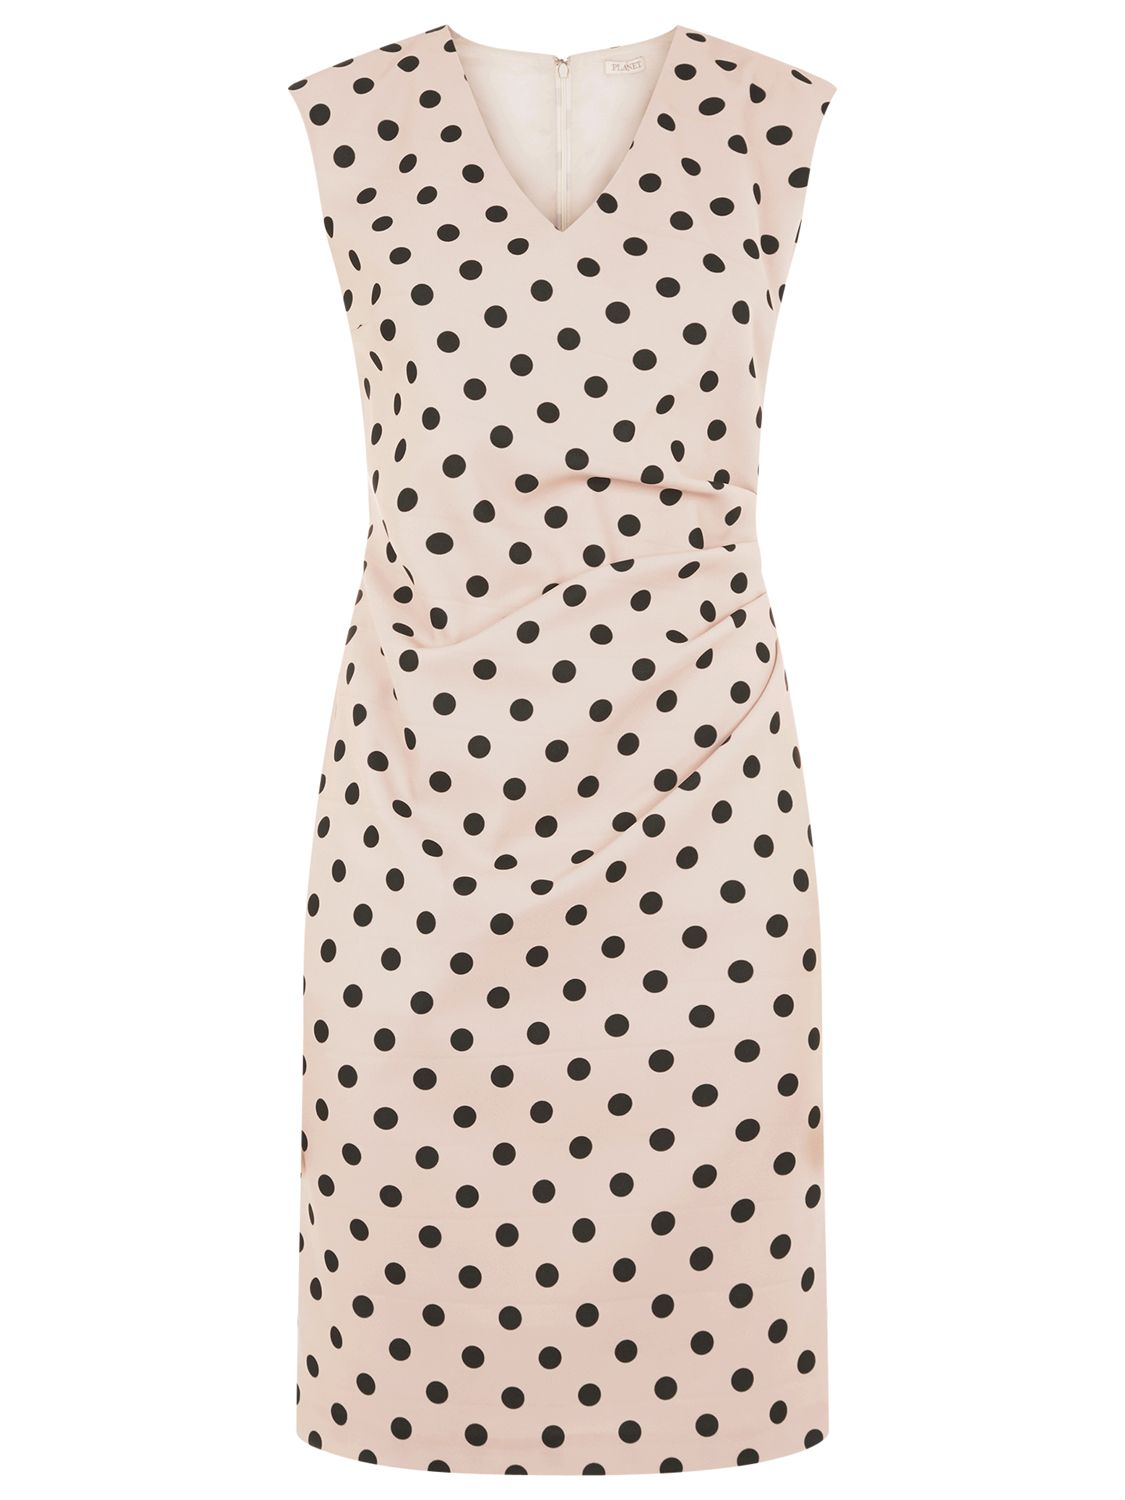 planet pearl spot dress oyster, planet, pearl, spot, dress, oyster, 16|14|20|18|12|10|8, women, plus size, womens dresses, new in clothing, 1887275